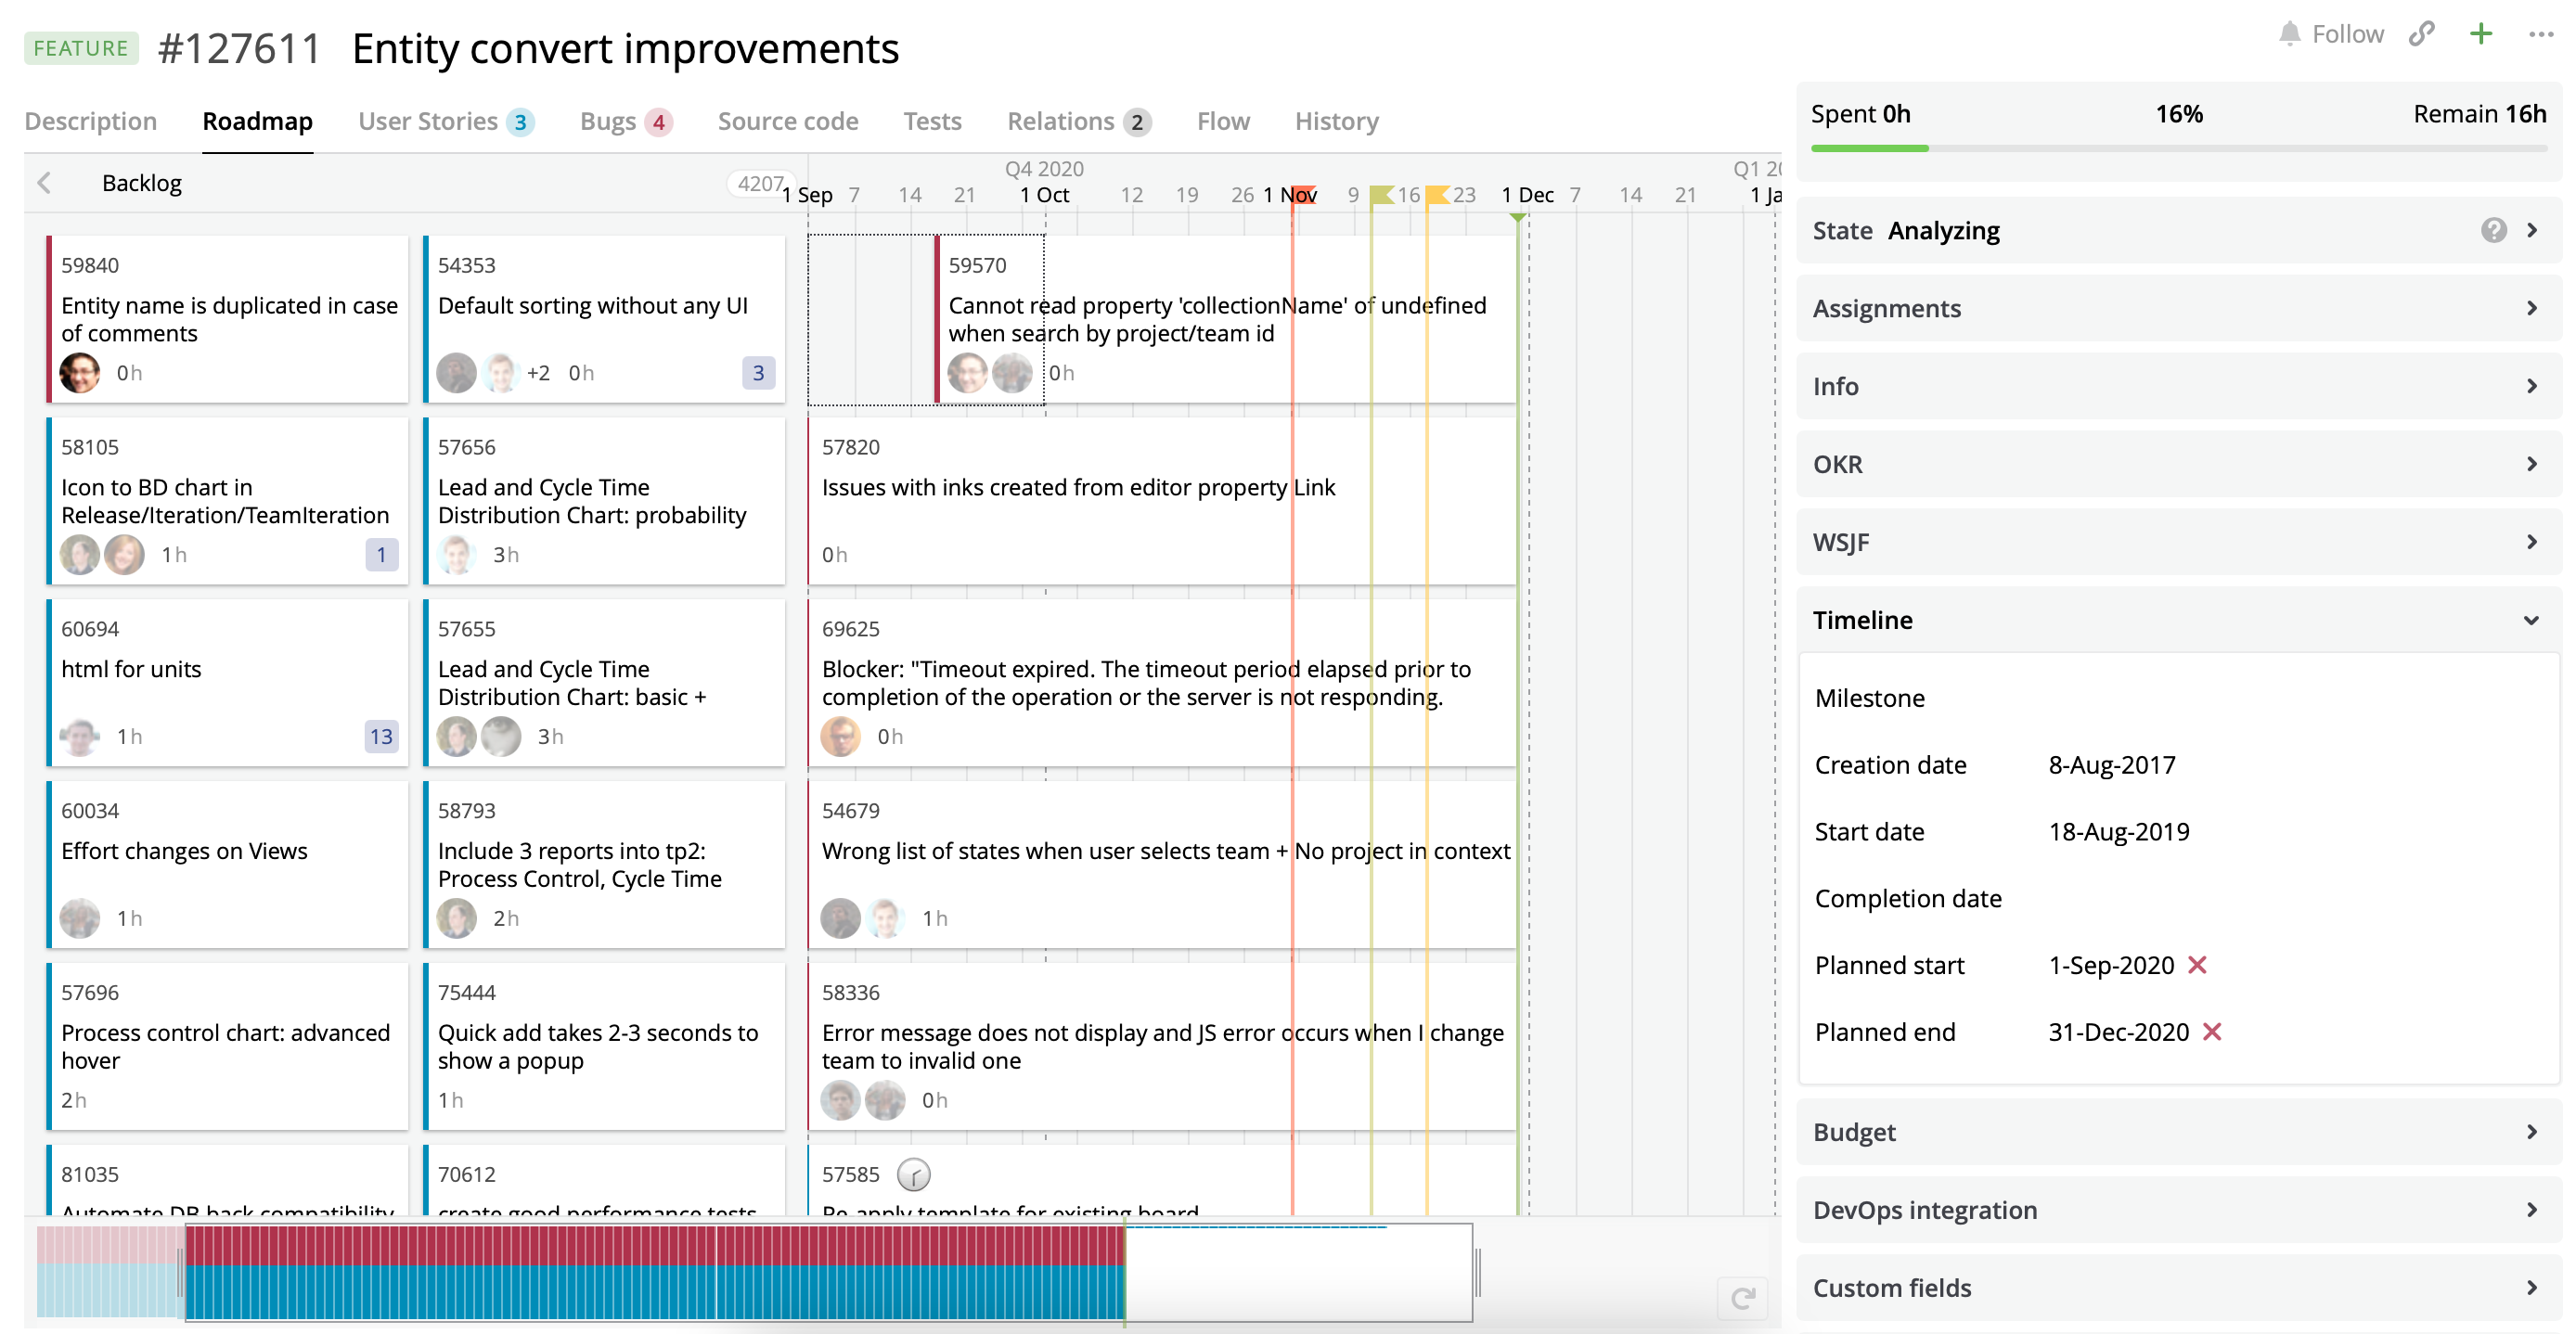 A Roadmap view with User Stories and Bugs assigned to the Project of the current Feature with set Planned dates.